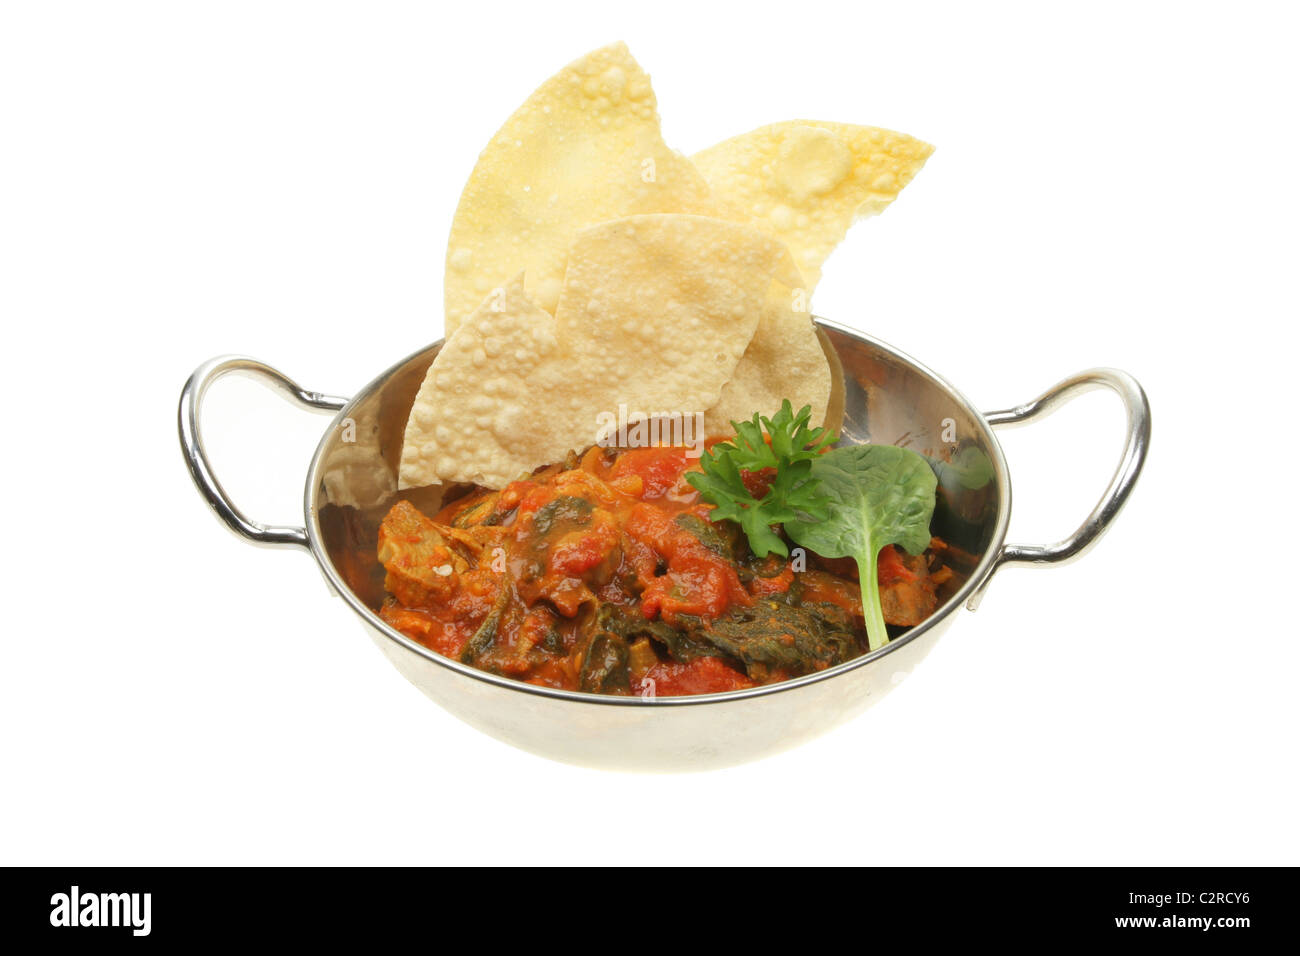 Curry and pappadoms in a balti dish - Stock Image